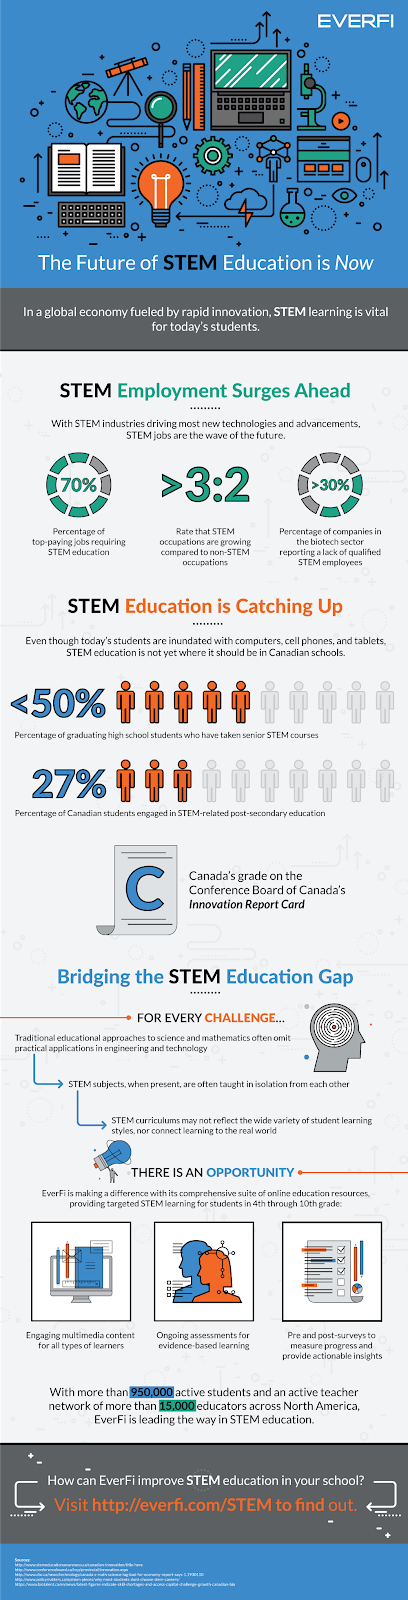 everfi infographic for best stem jobs